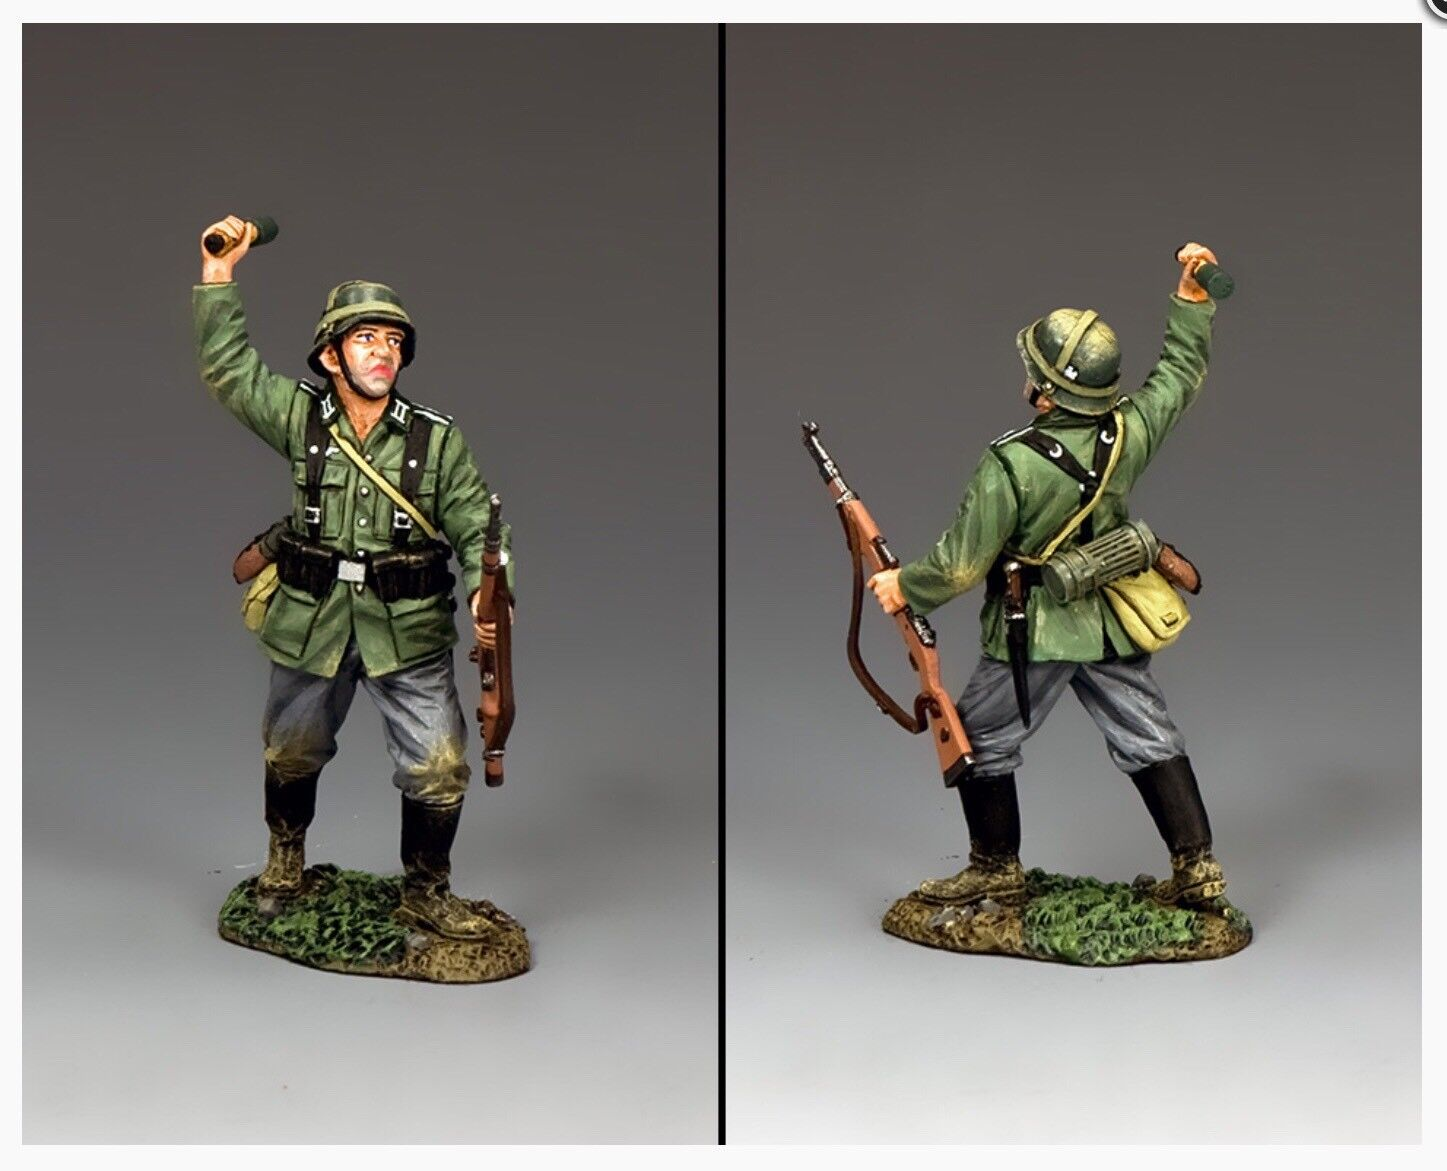 FOB164 WW2 German Soldaten With Grenade Mint in Box Normandy D-Day